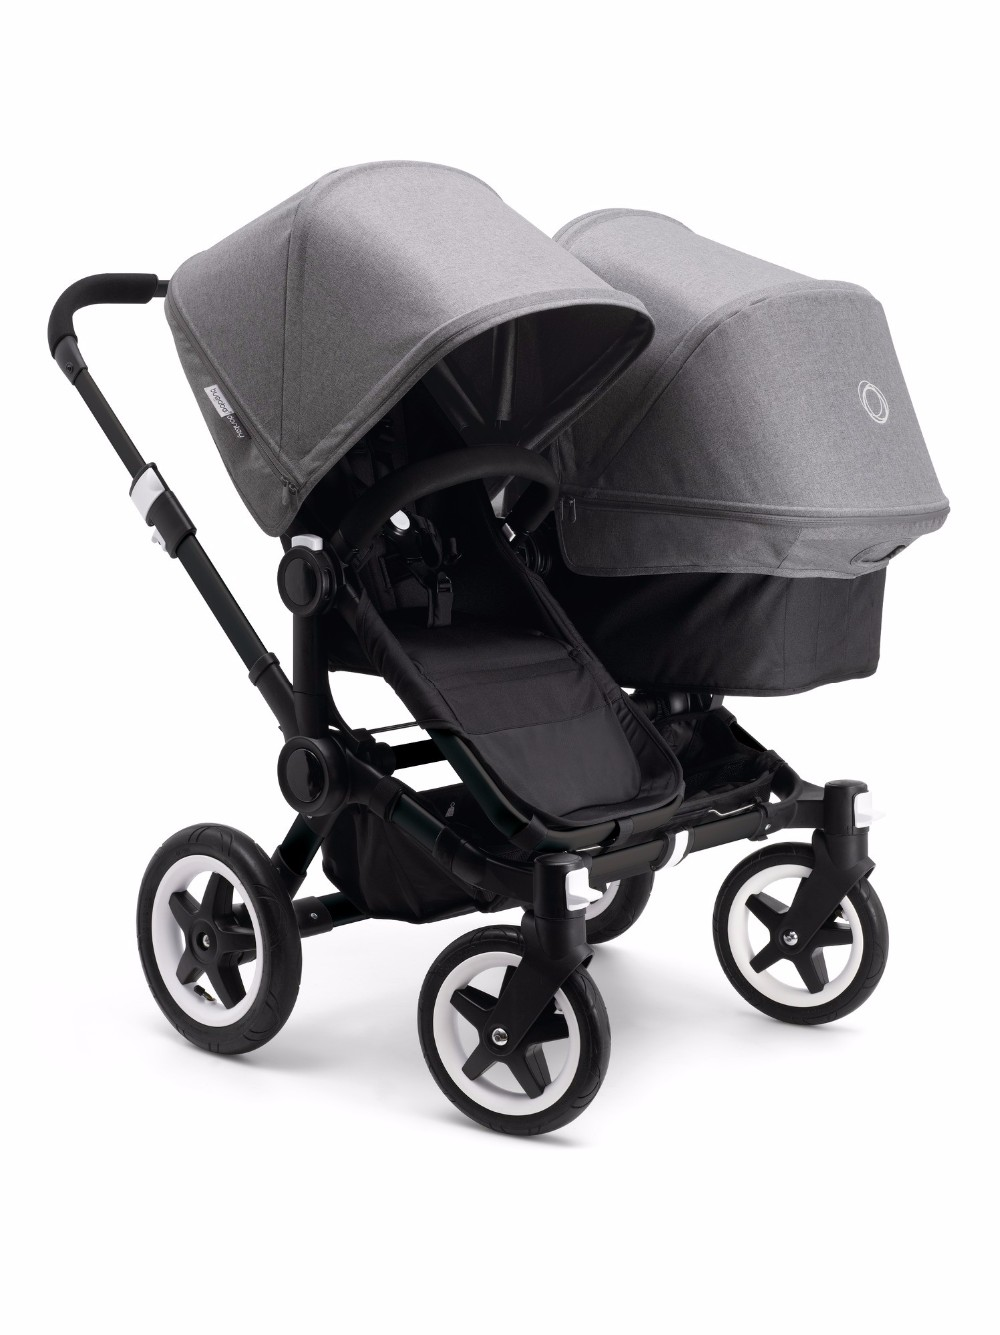 Hot Sales For Original Bugaboo Stroller, Black Fabric With Bassine Free Shipping